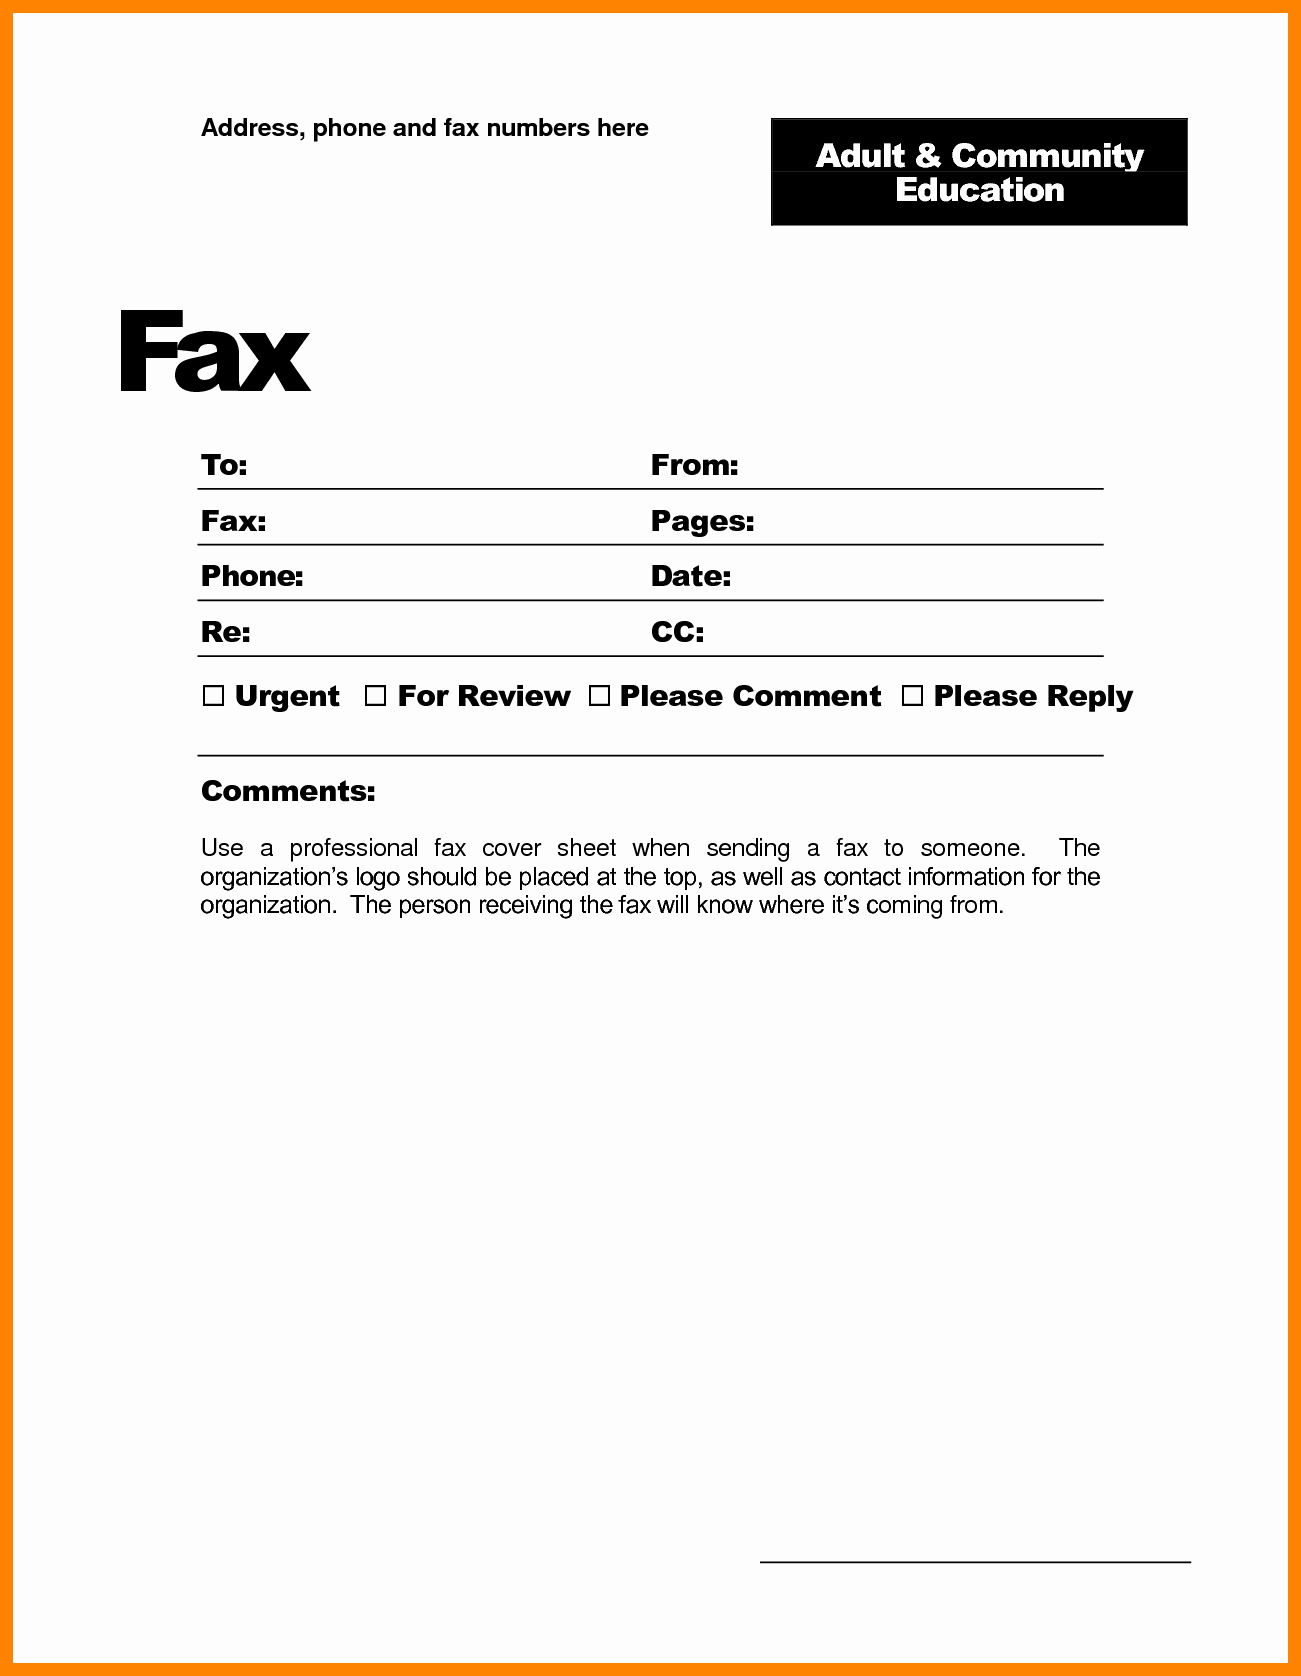 Free Fax Cover Page Template New Fax Cover Template Word Portablegasgrillweber